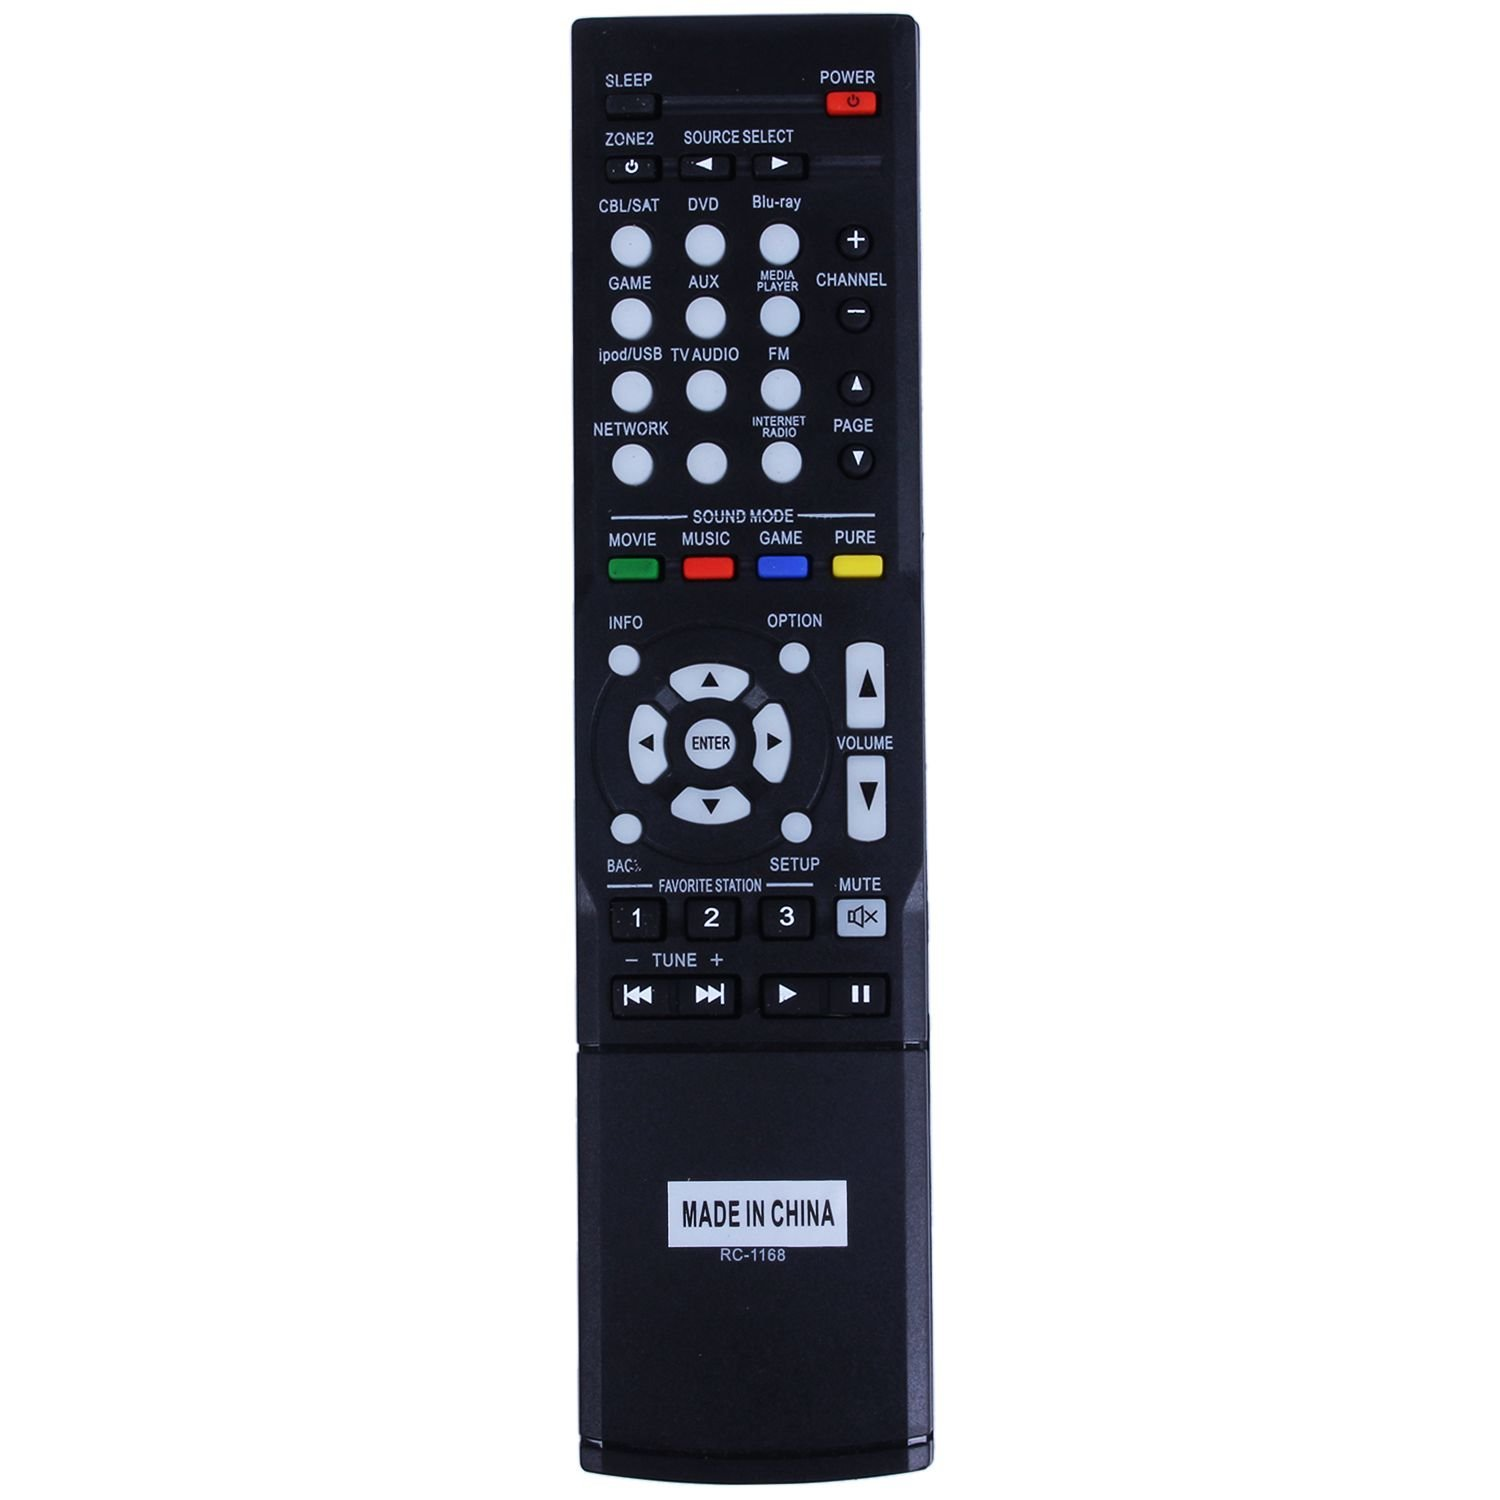 SODIAL ( R )リモートコントロールrc-1168 for Denon avr1613 avr1713 1912 1911 2312 3312受信機   B077ZK8Y9H